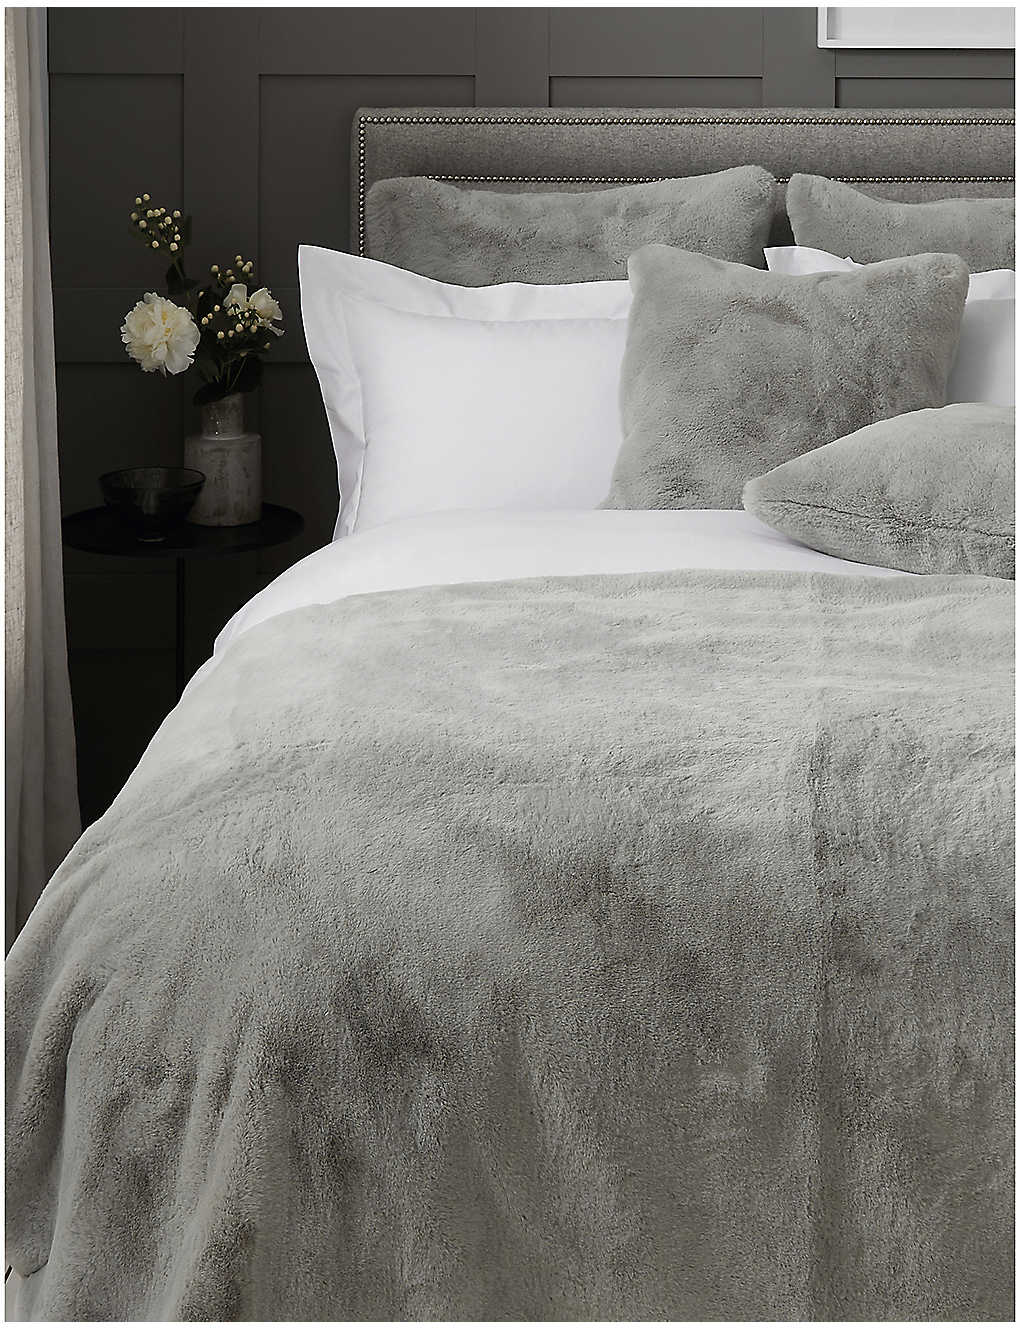 THE WHITE COMPANY: Faux-fur throw 200cm x 140cm